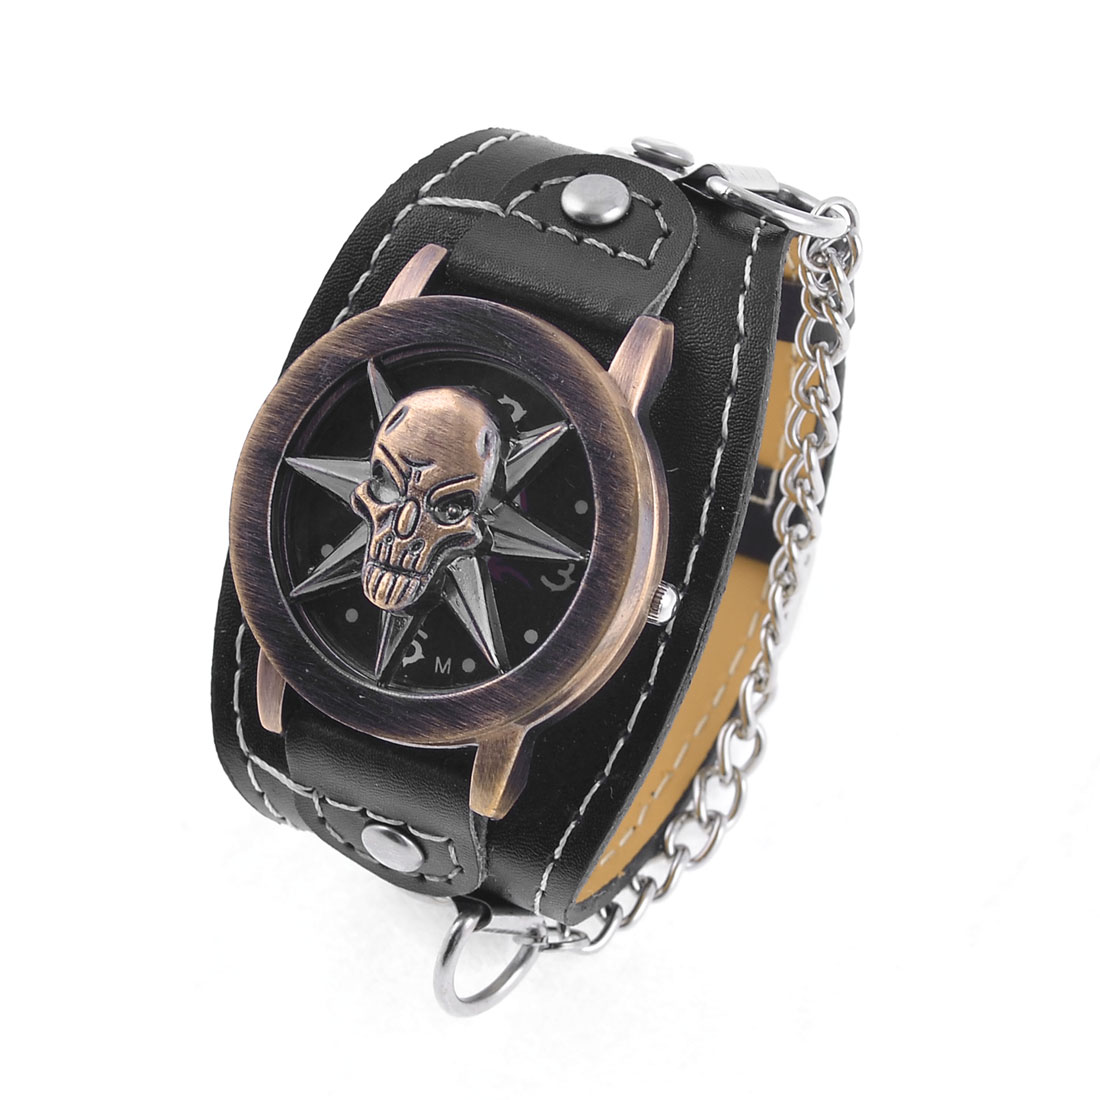 Lady Arabic Number Dial Adjustable Faux Leather Strap Watch Black w Skull Cover